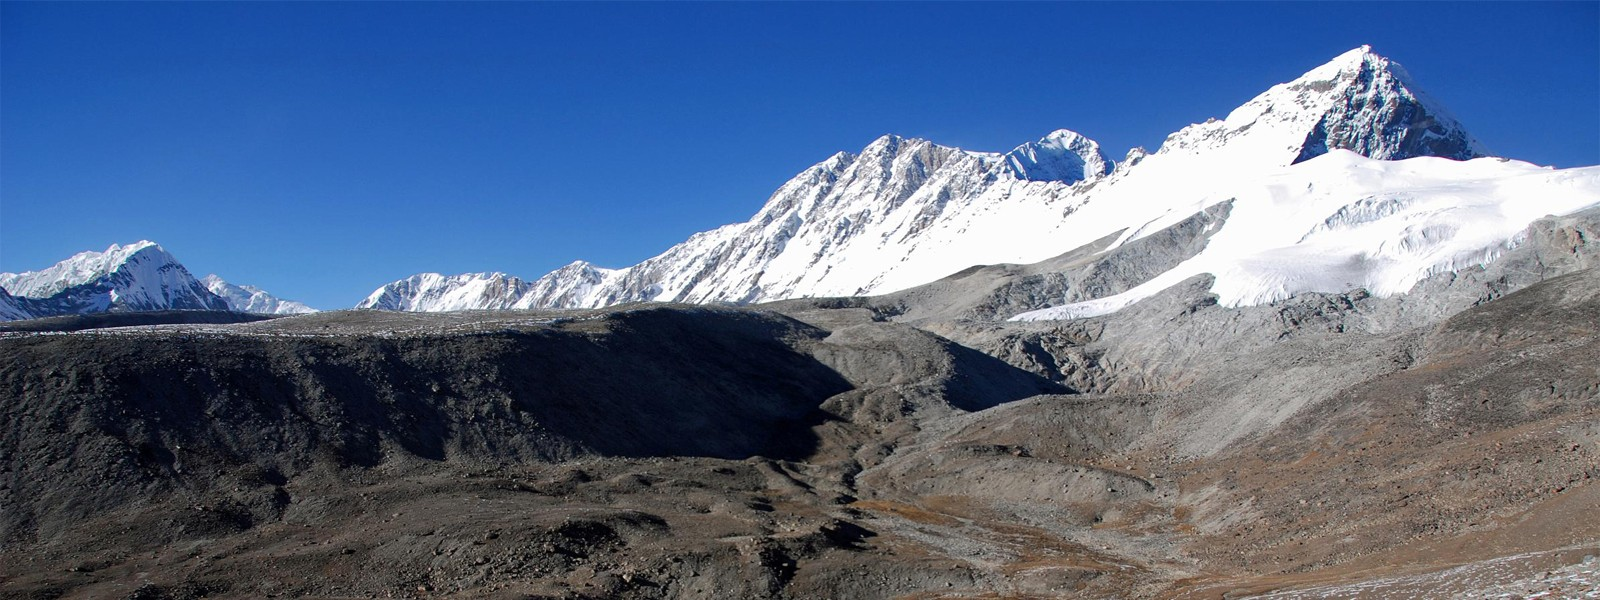 Mt. Shishapangma southwest face expedition in Tibet region